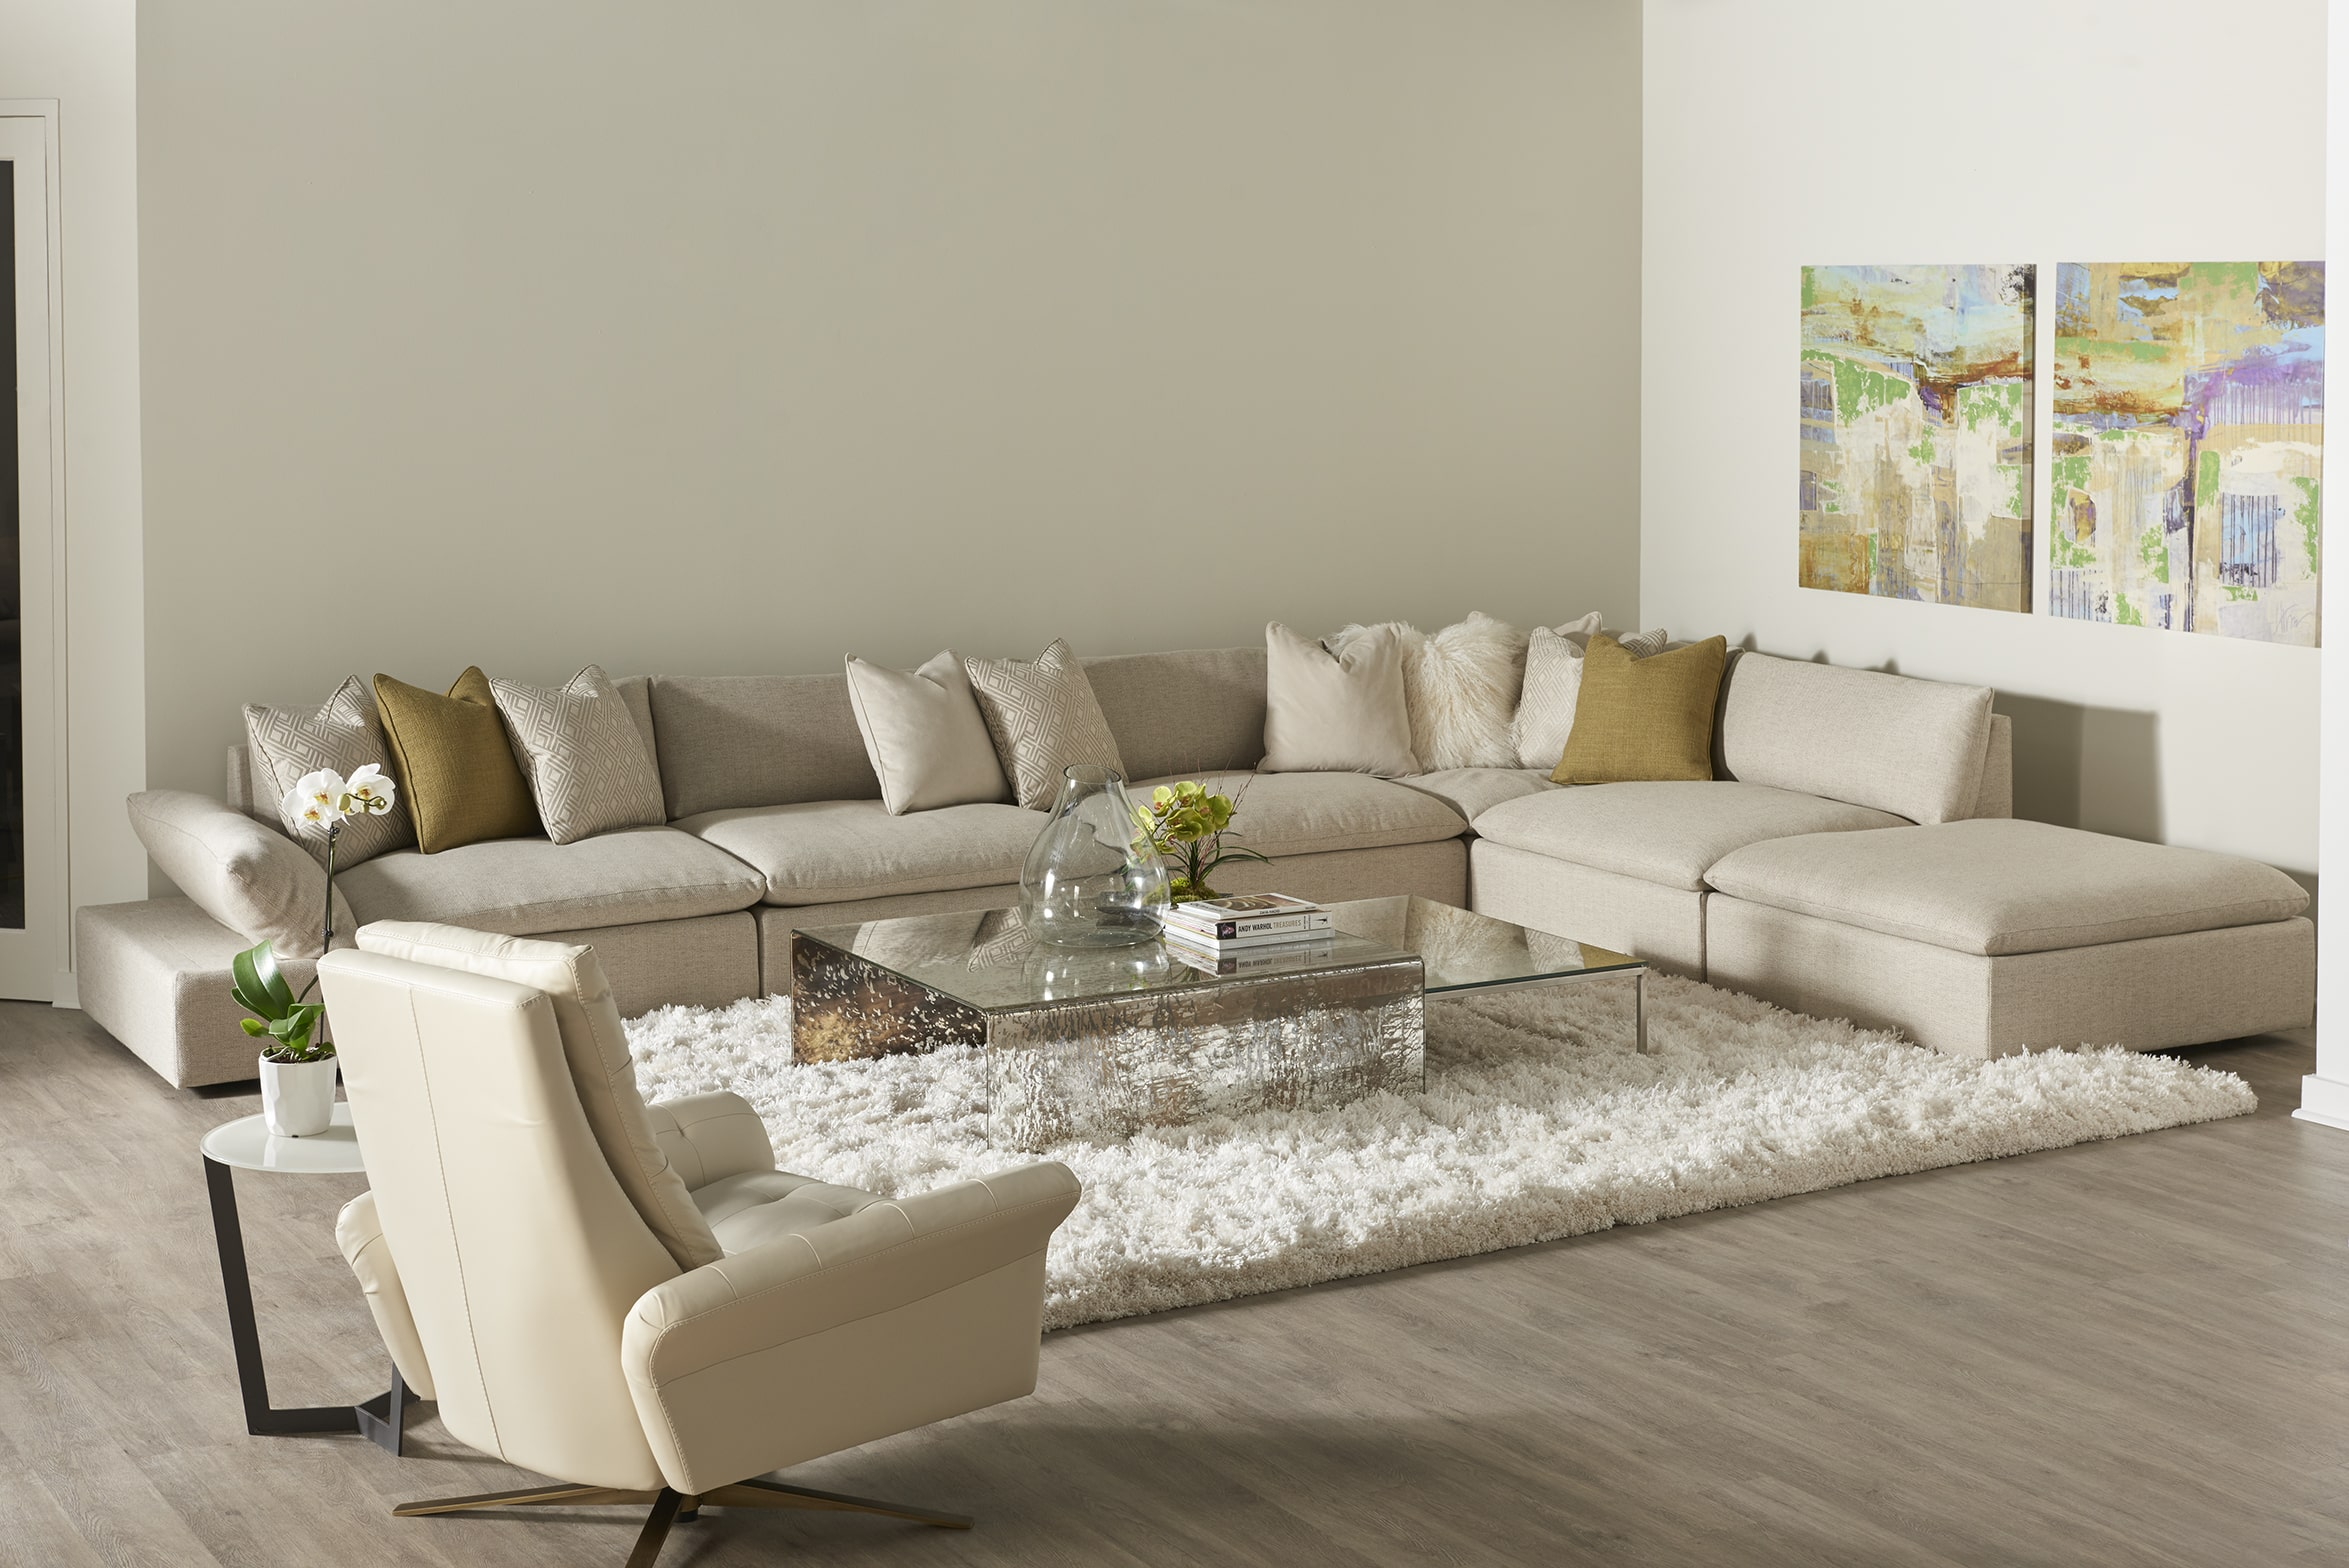 Circle Furniture How Much Does It Cost To Furnish A Living Room